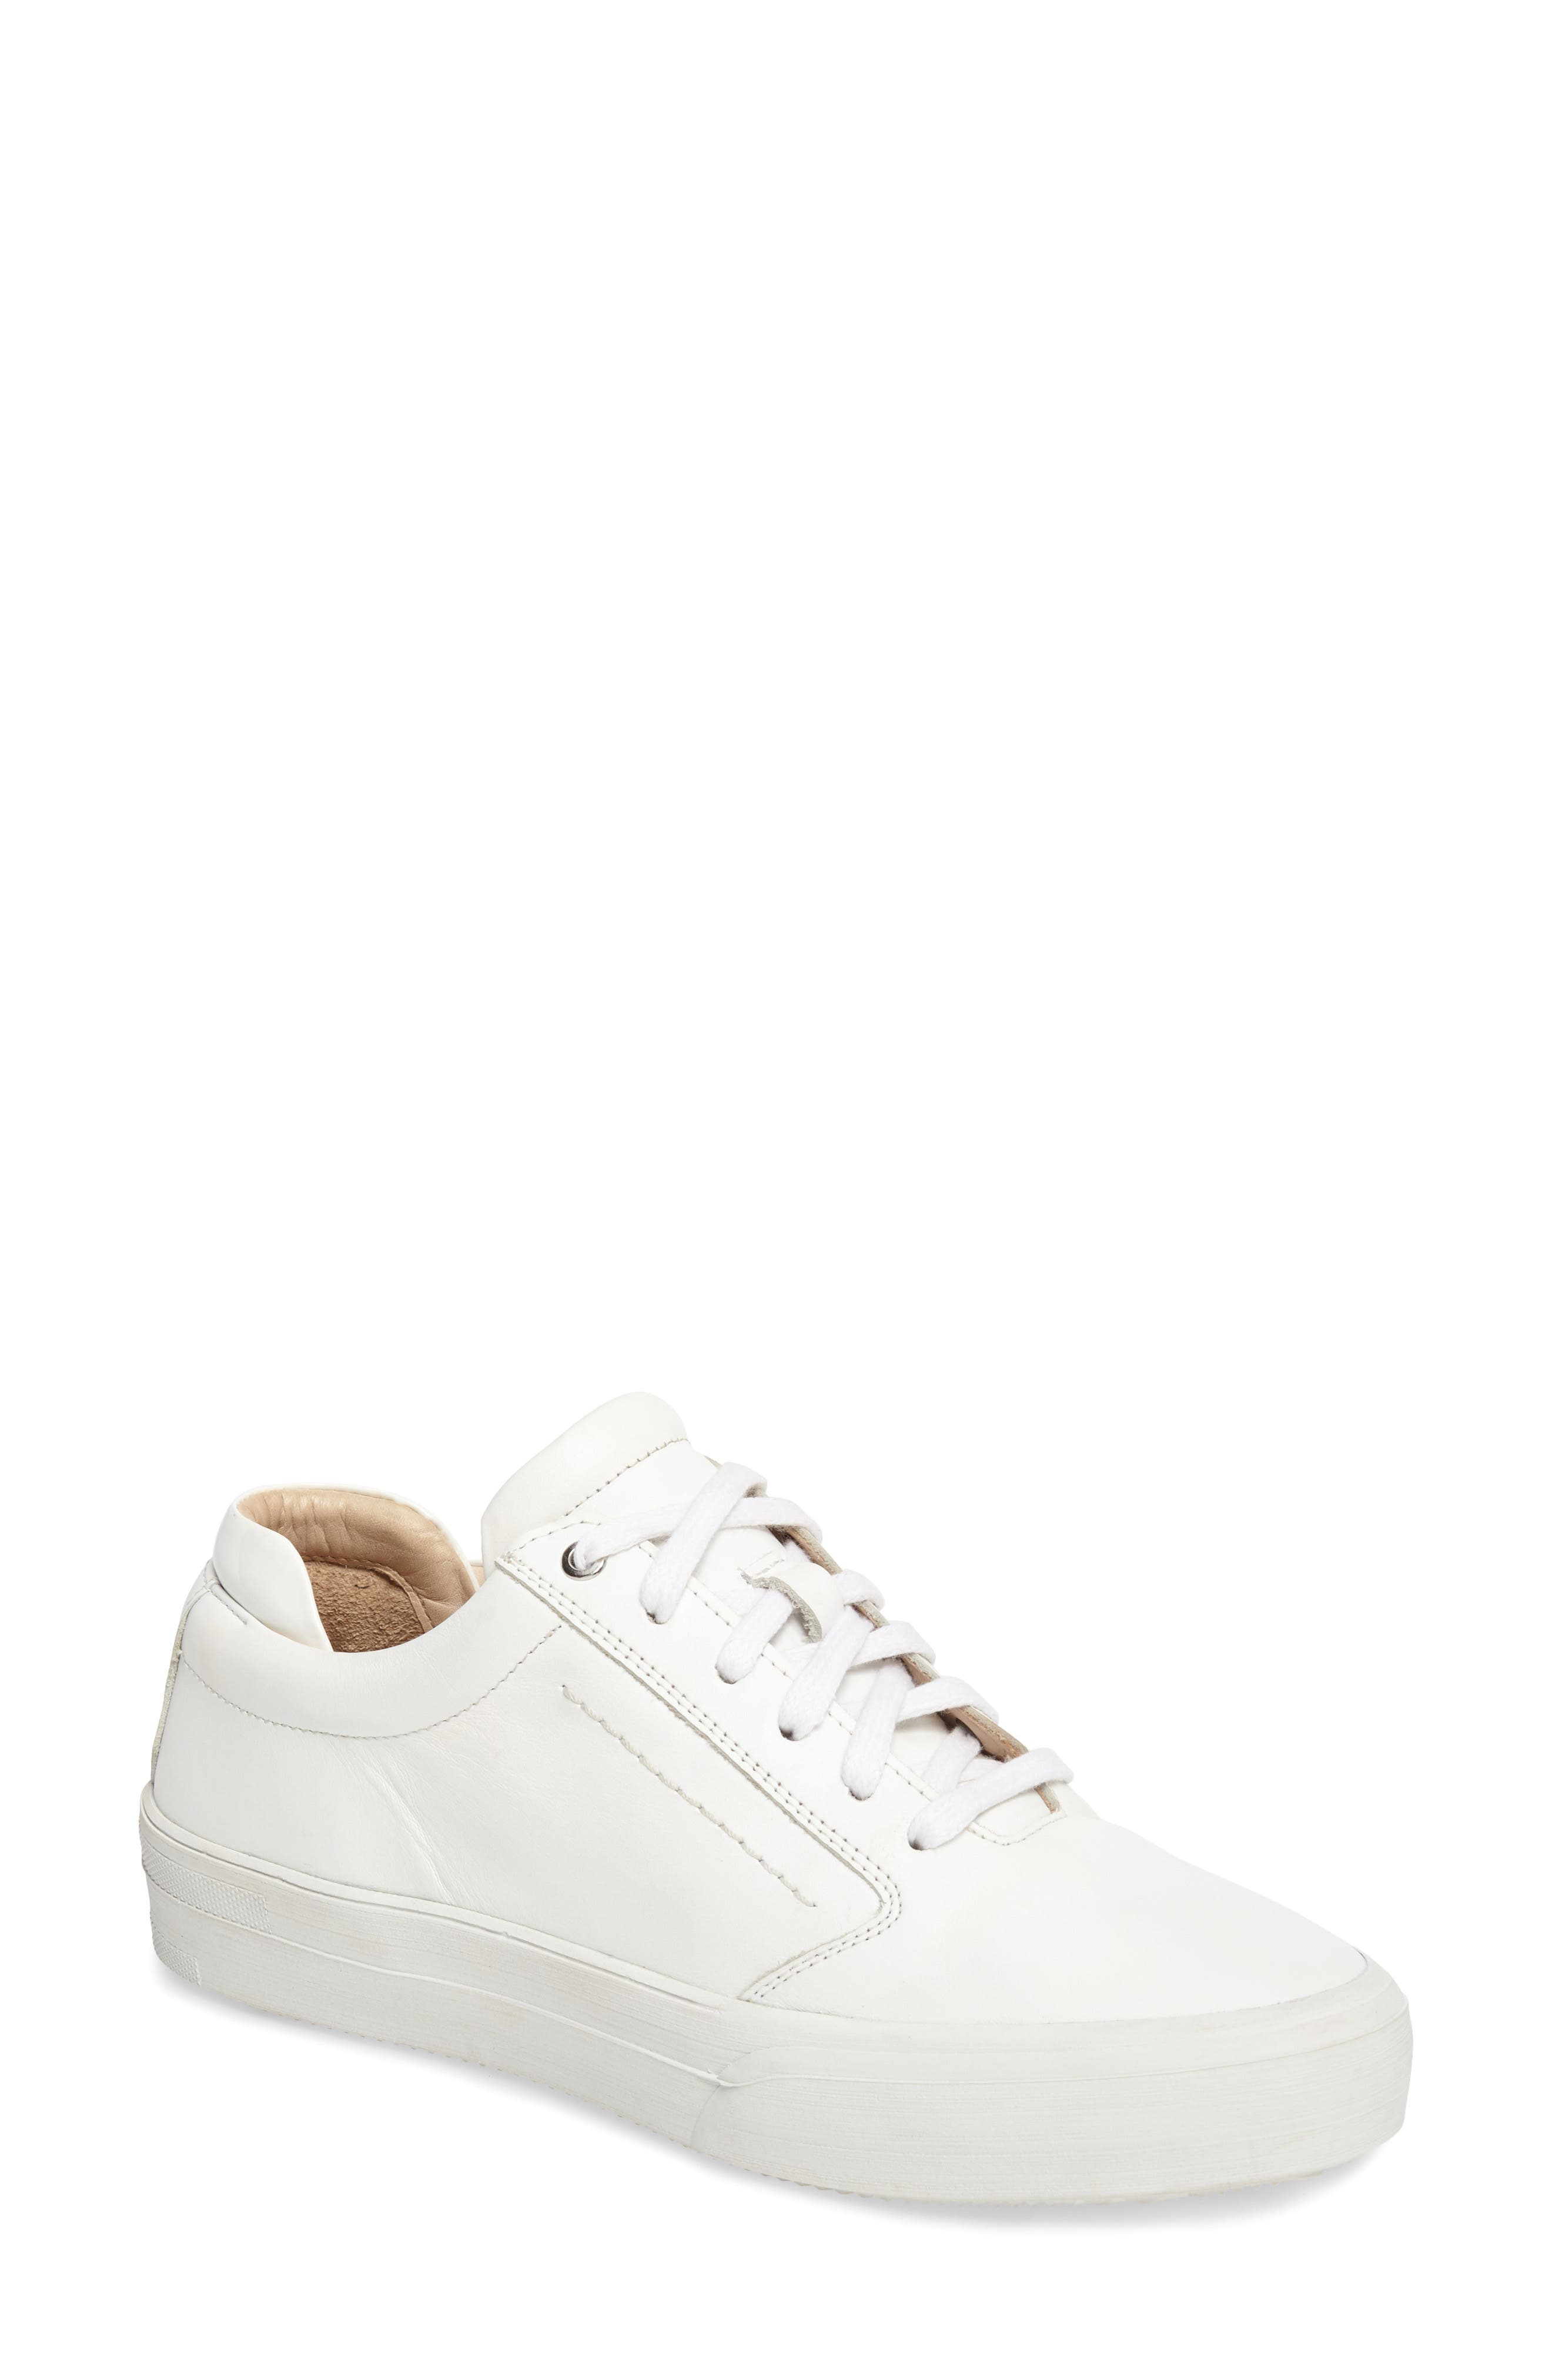 Lalibela Sneaker,                         Main,                         color, WHITE/PATENT WHITE